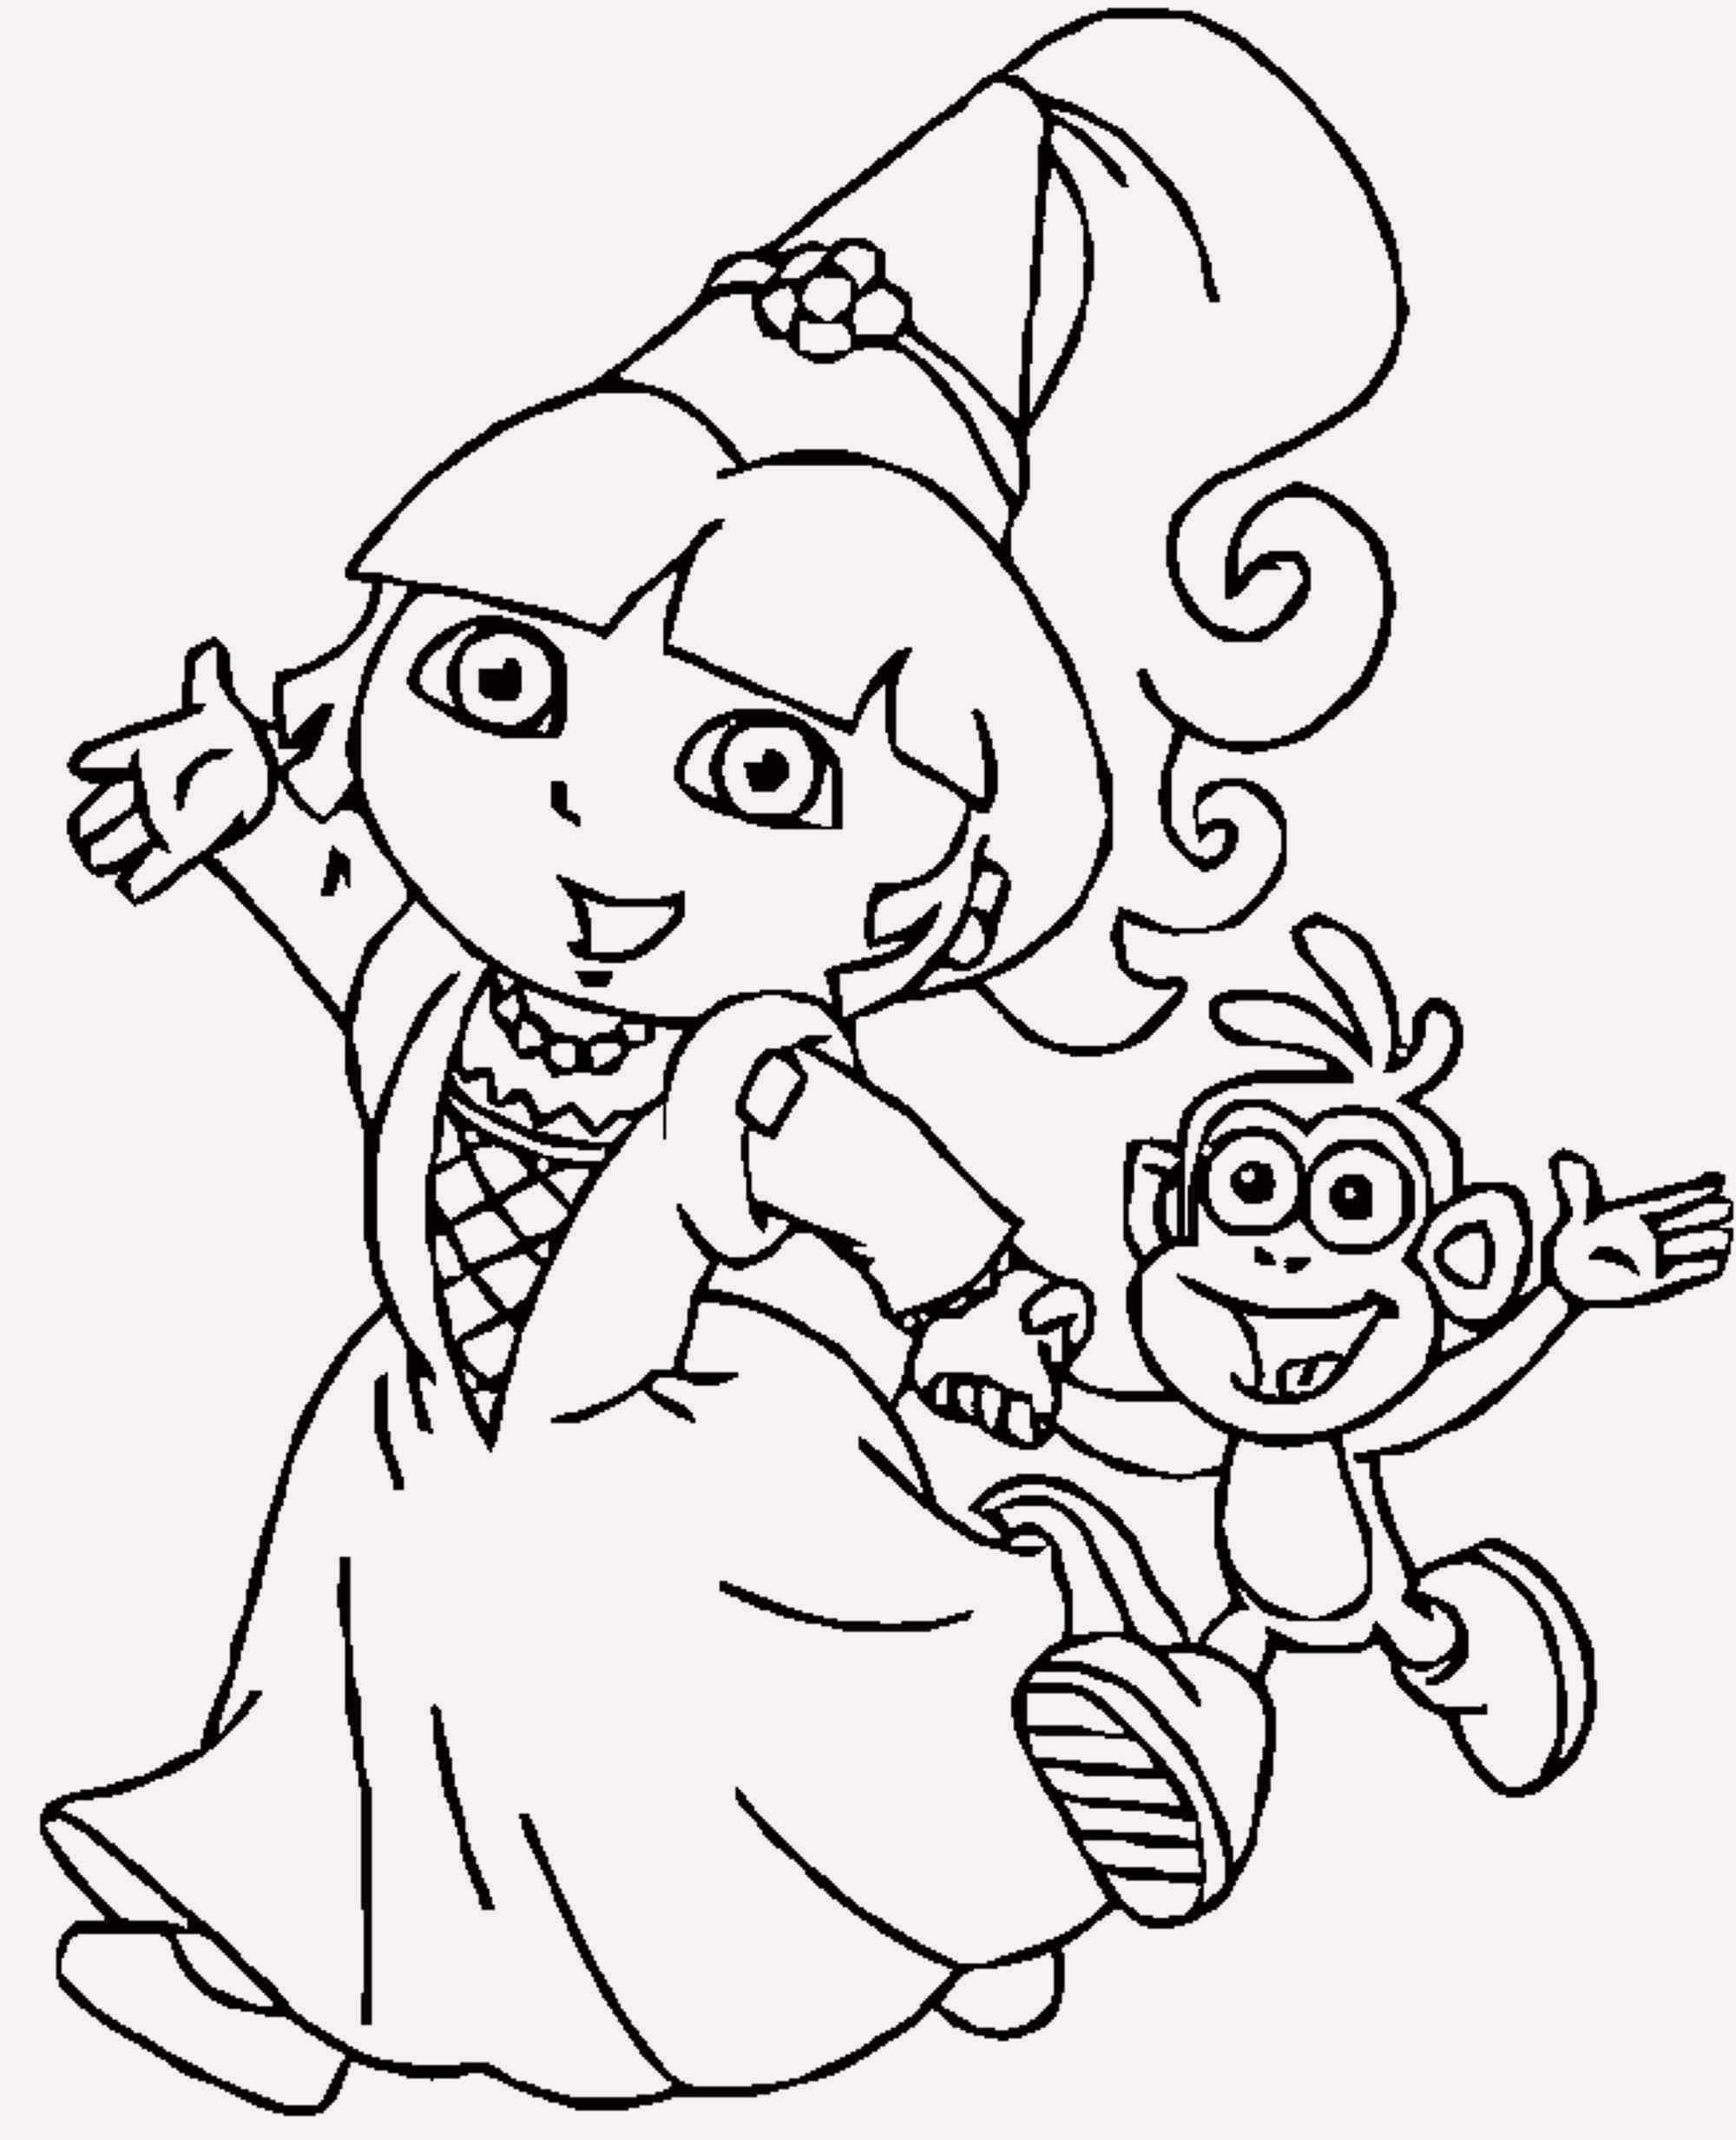 16 Disney Channel Zombies Coloring Pages In 2020 Princess Coloring Pages Cartoon Coloring Pages Minion Coloring Pages